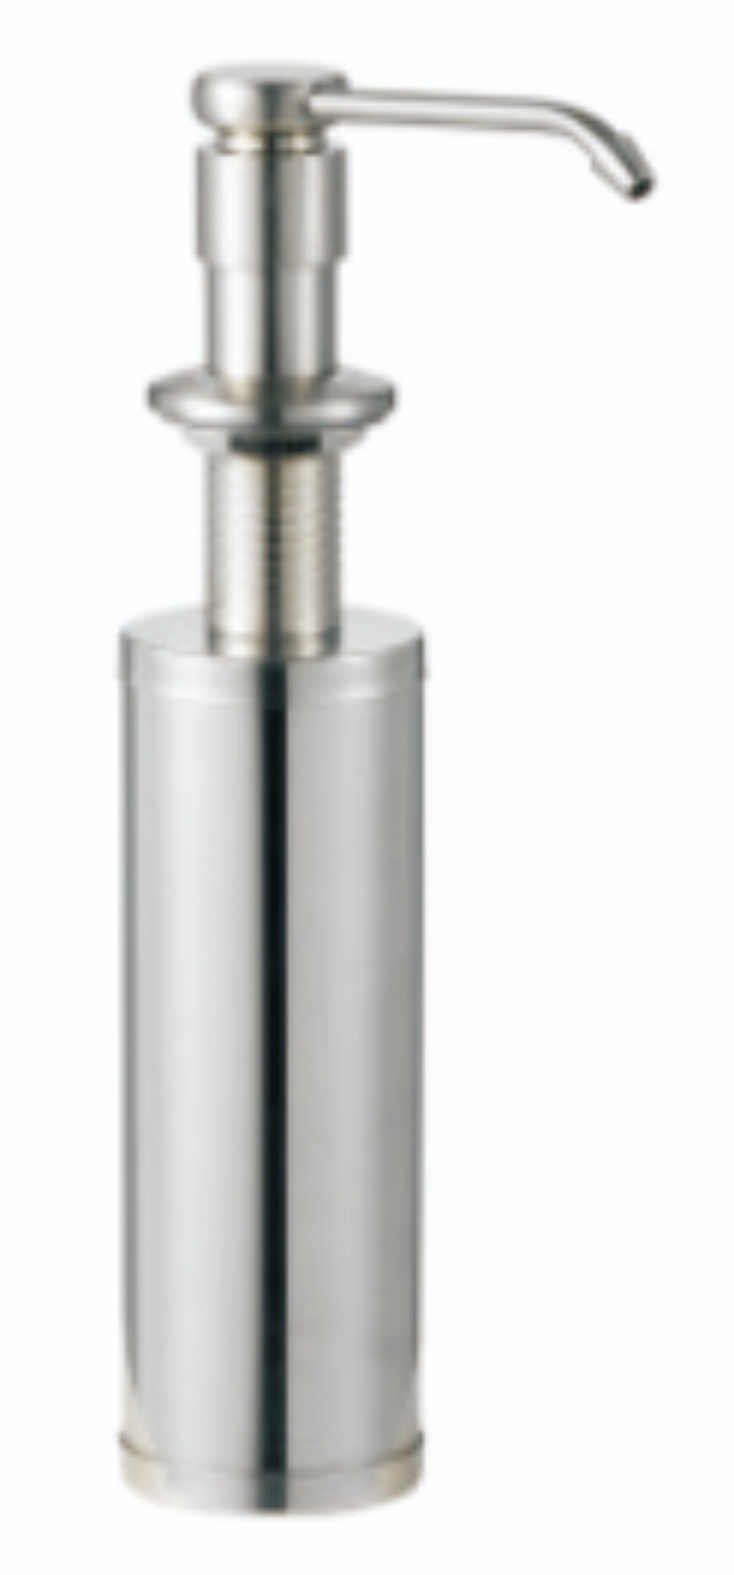 Sink Stainless Steel Soap Dispenser (A02)